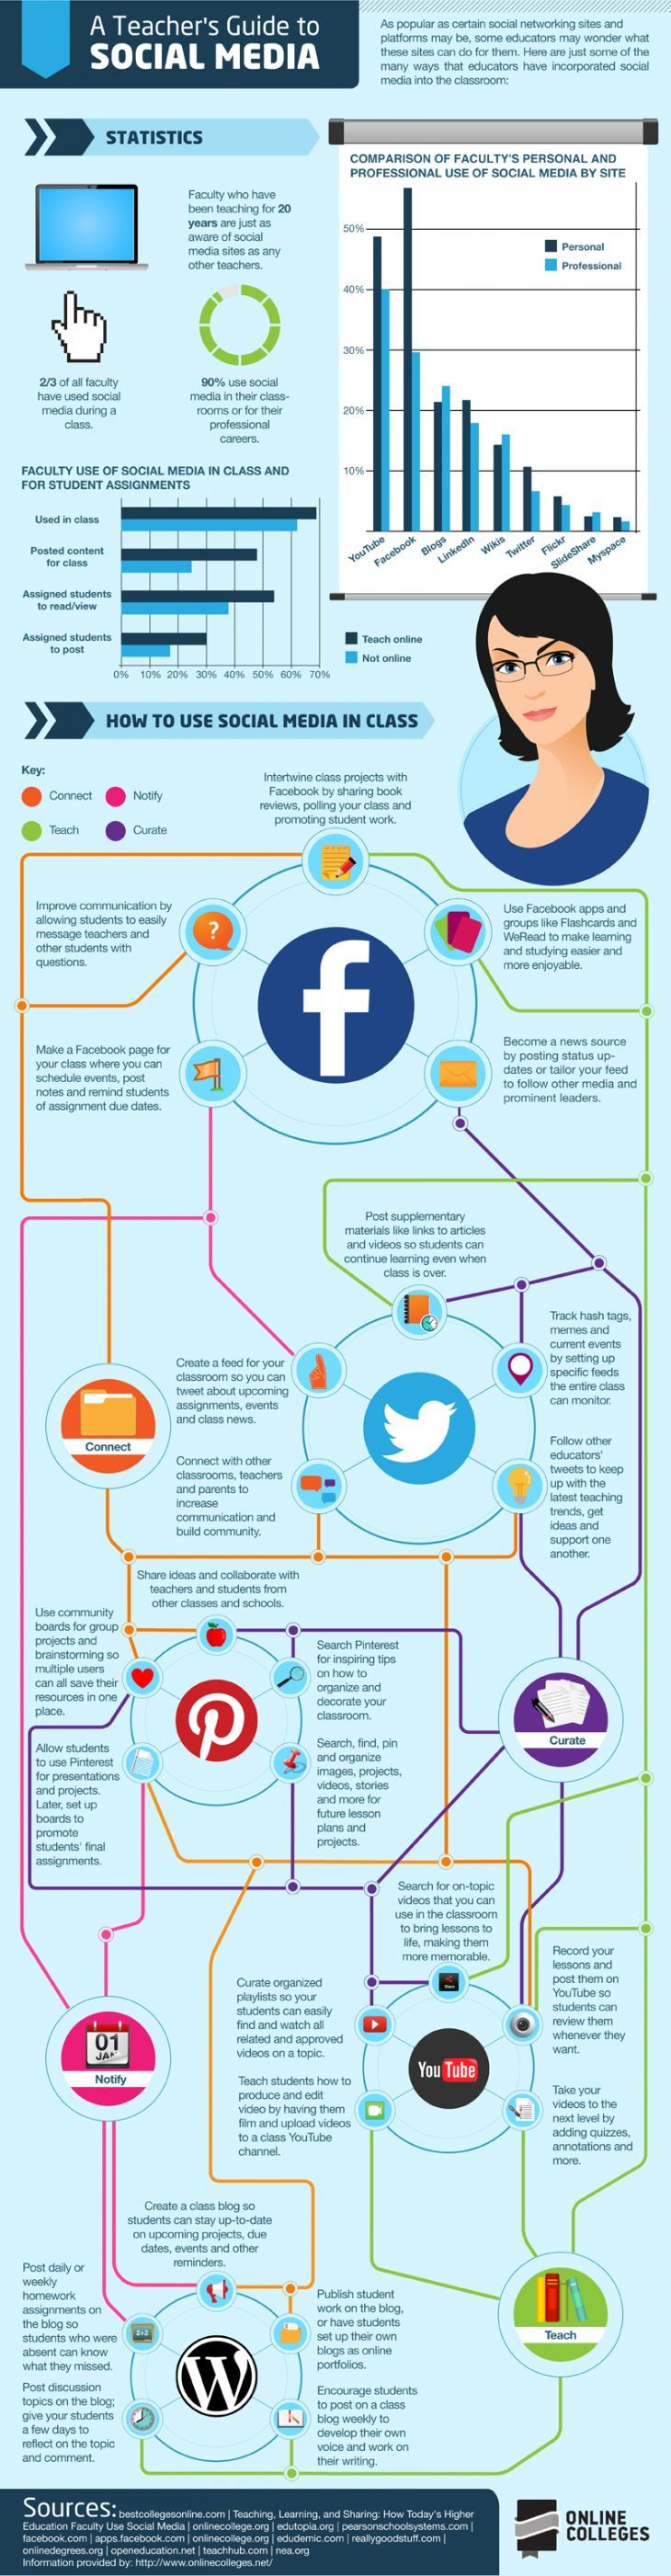 25 Ways Teachers Can Integrate Social Media Into Education #infographic (repinned by @Ricardo Llera)